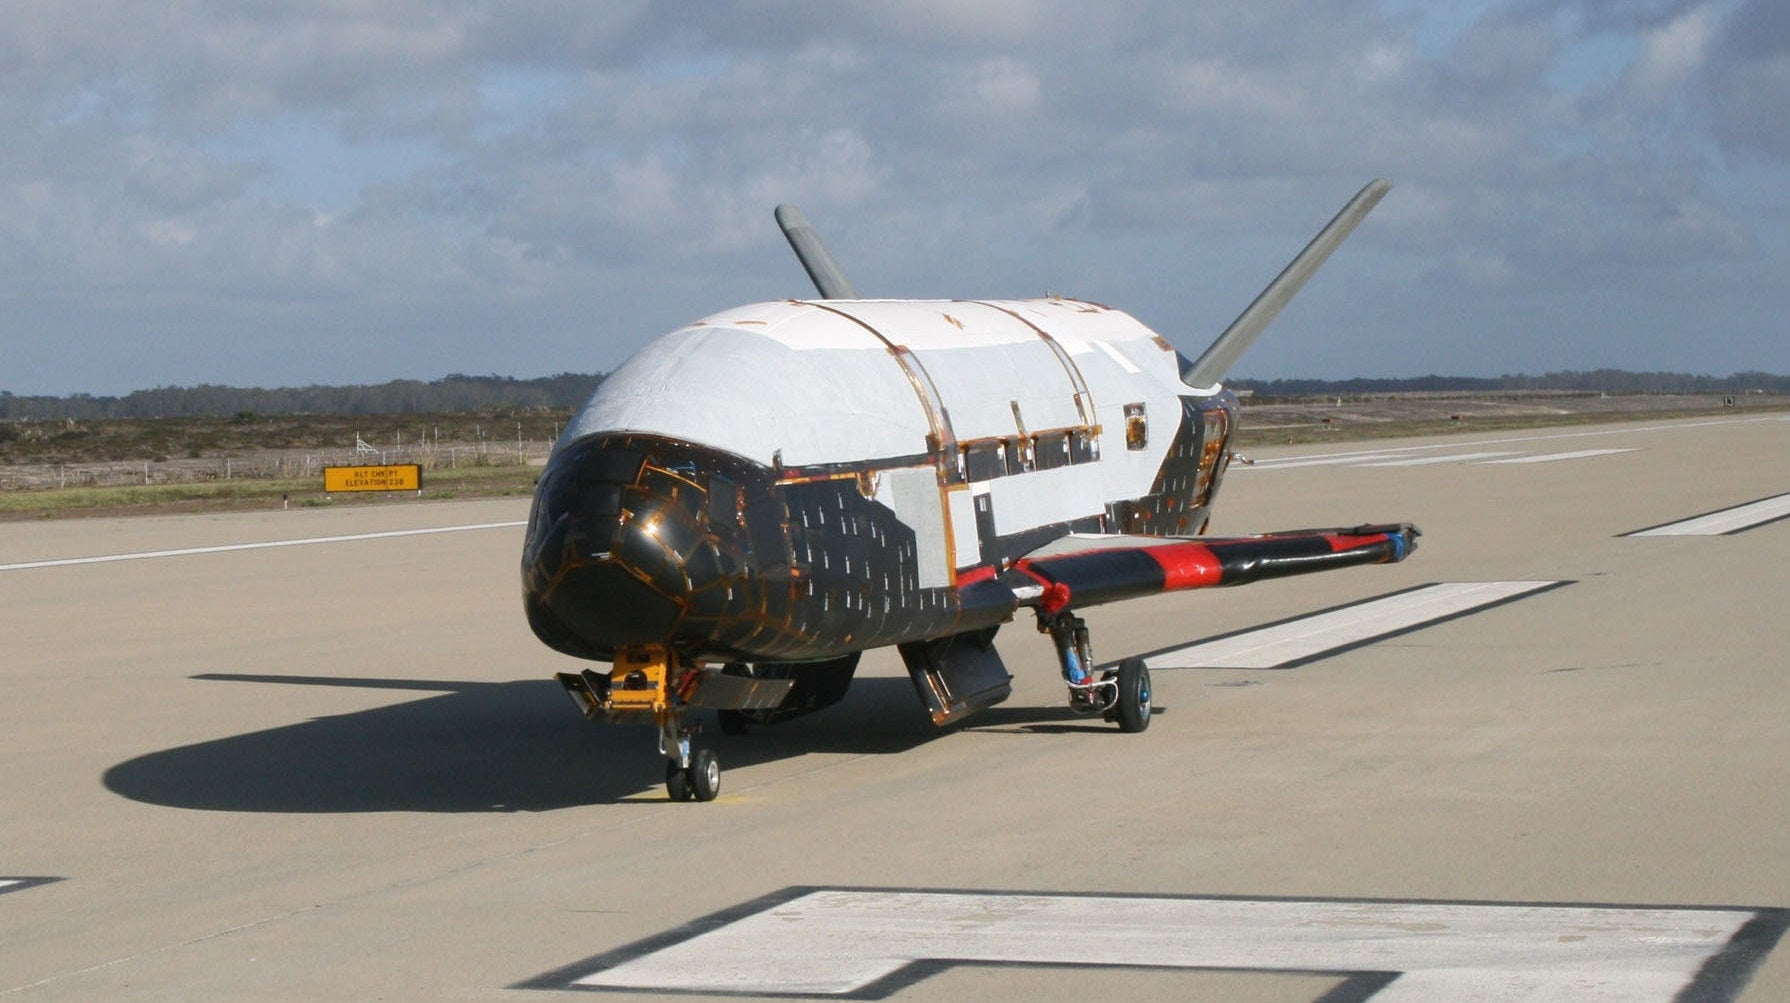 Top-Secret Space Plane Set To Launch On Not-So-Secret Science Mission